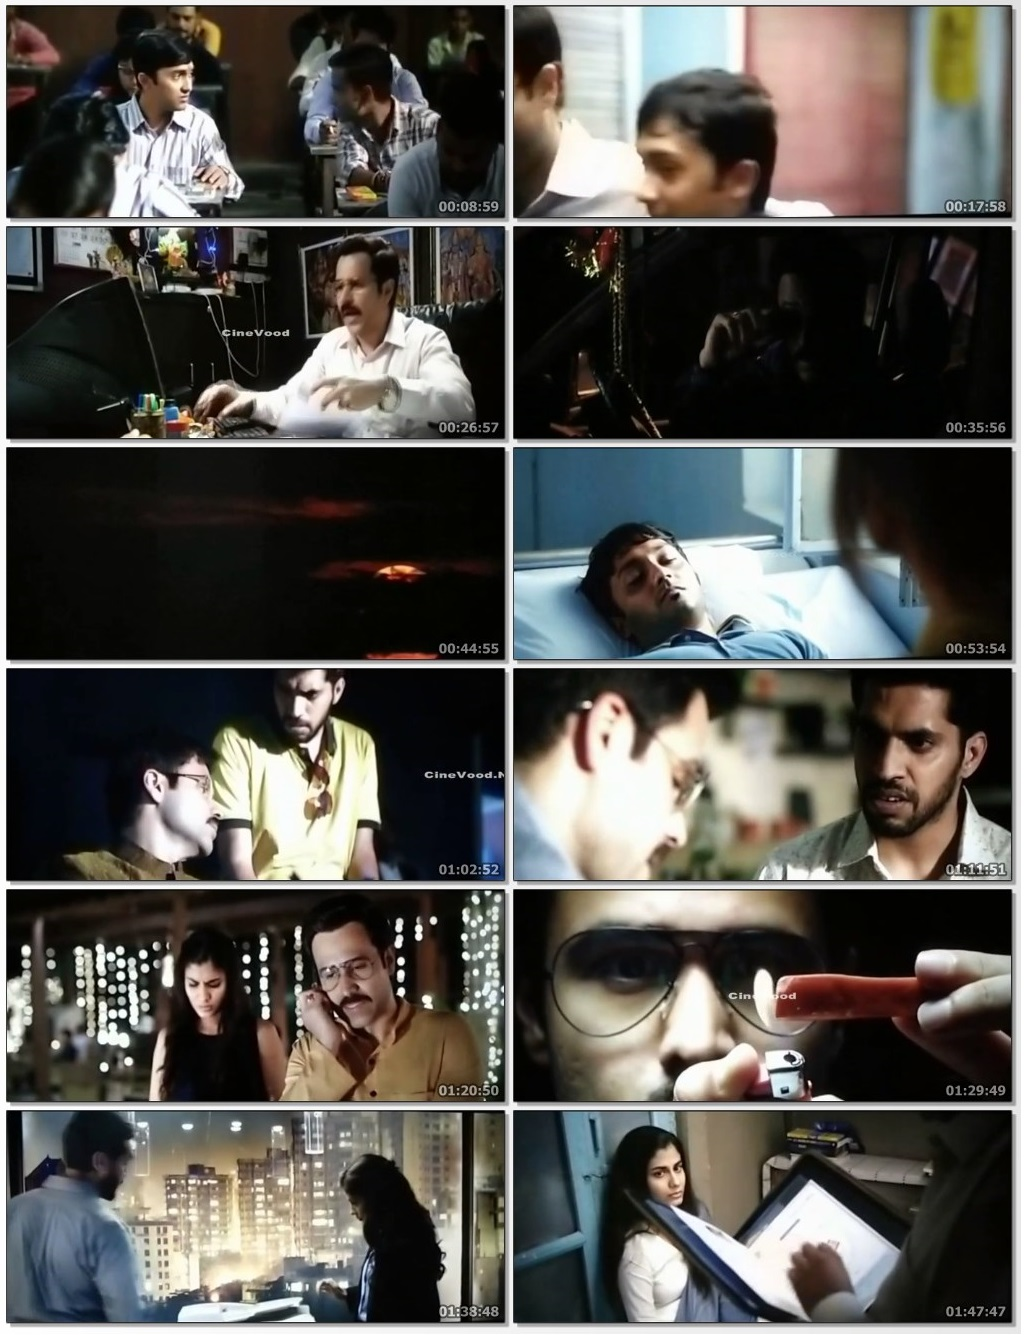 Why-Cheat-India-2019-Hindi-PreDvDRip-700MB-CiNEVooD-Exclusive Why Cheat India (2019) Full Movie Download 300MB 480P PDVD HD Free Hindi